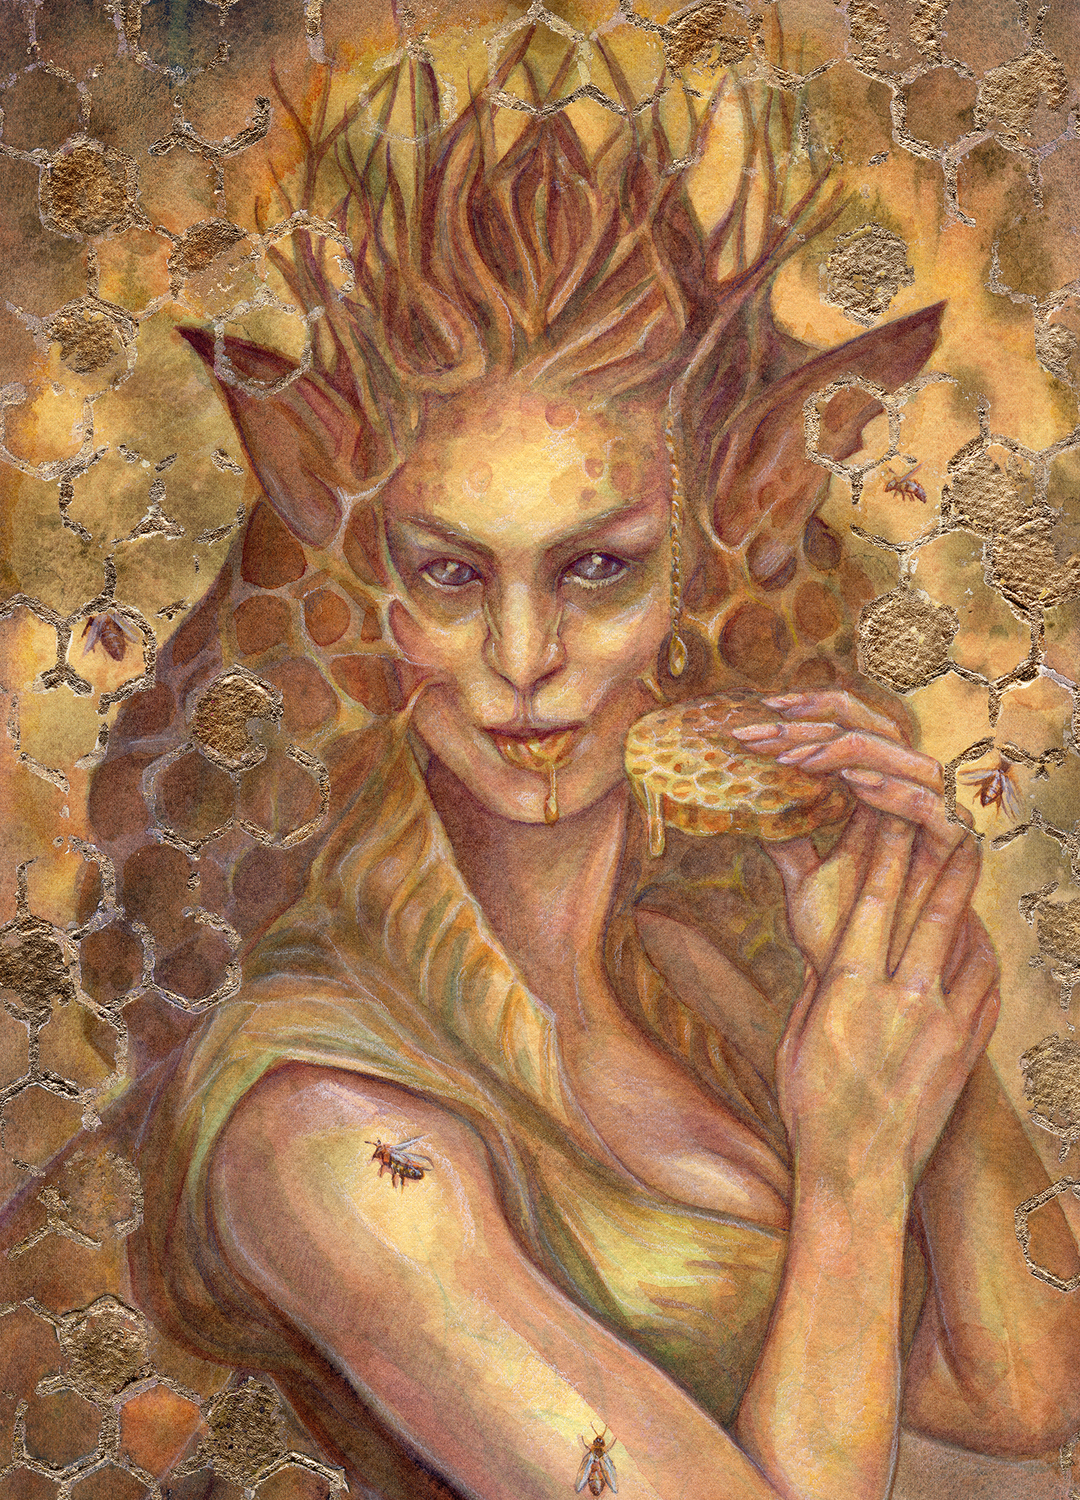 Unseelie Honeycomb Fae Artwork by Belinda Morris